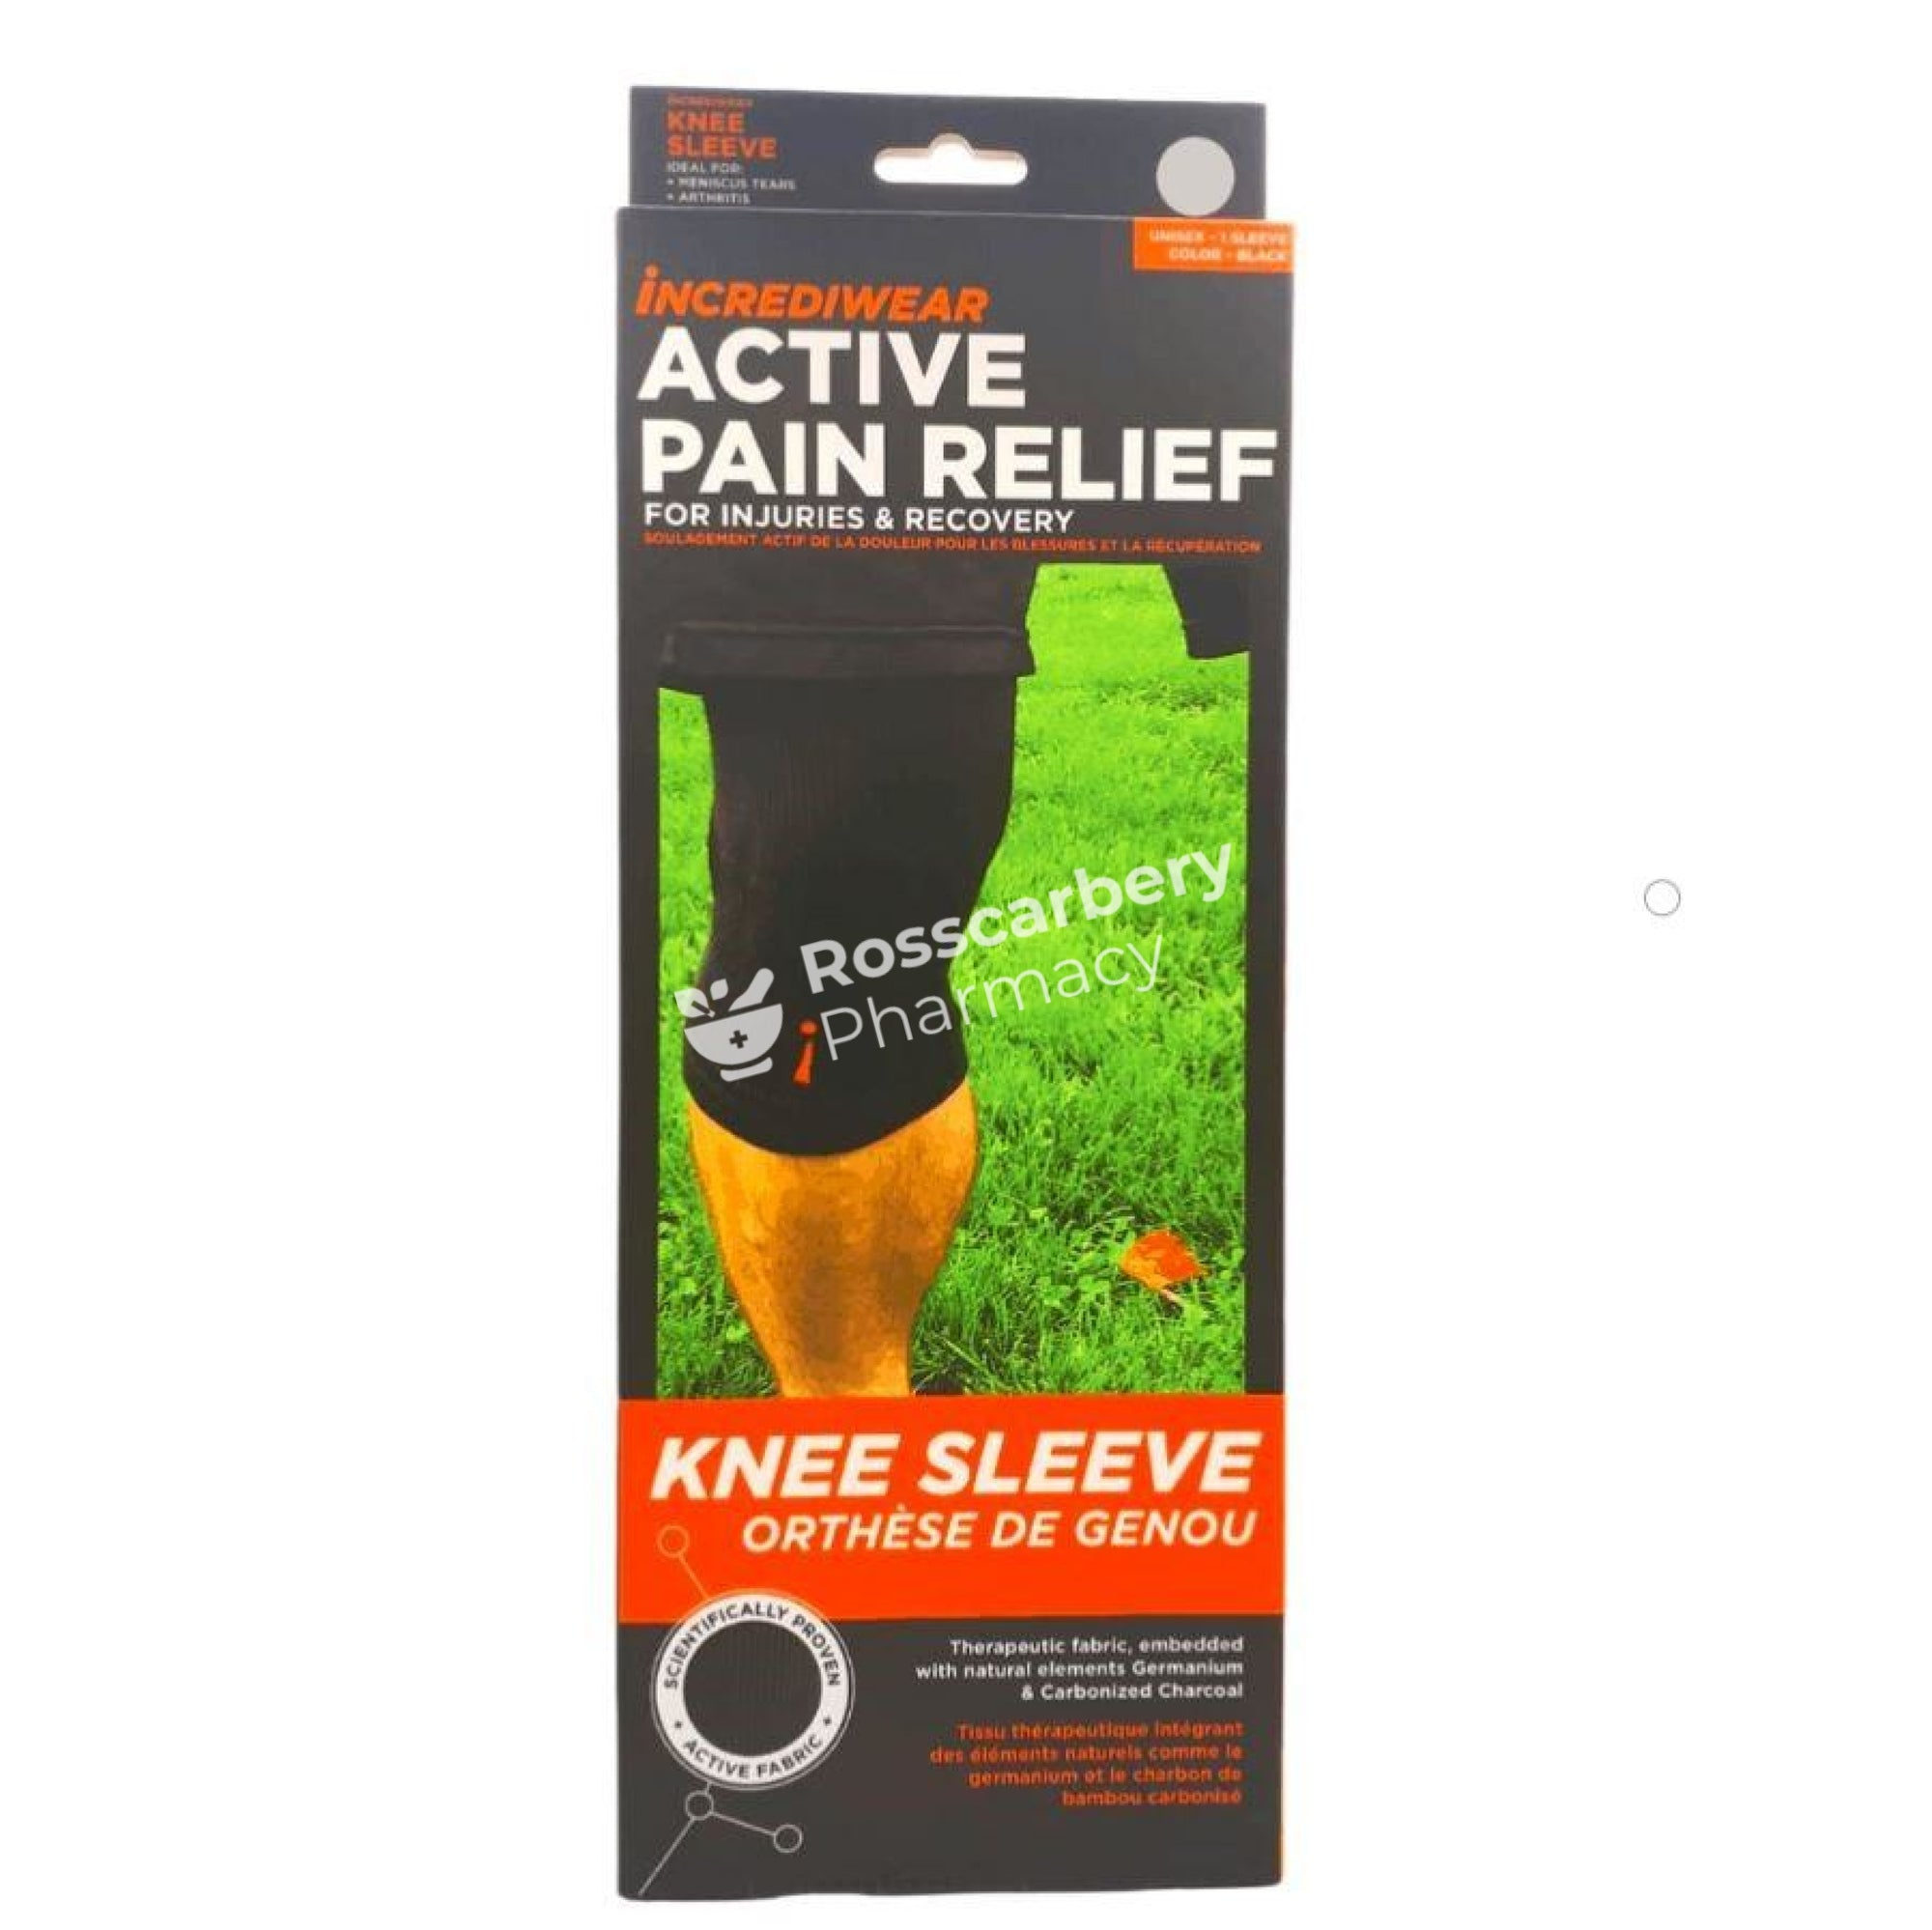 Incrediwear Active Pain Relief Knee Sleeve - Black Supports & Compression Hoisery